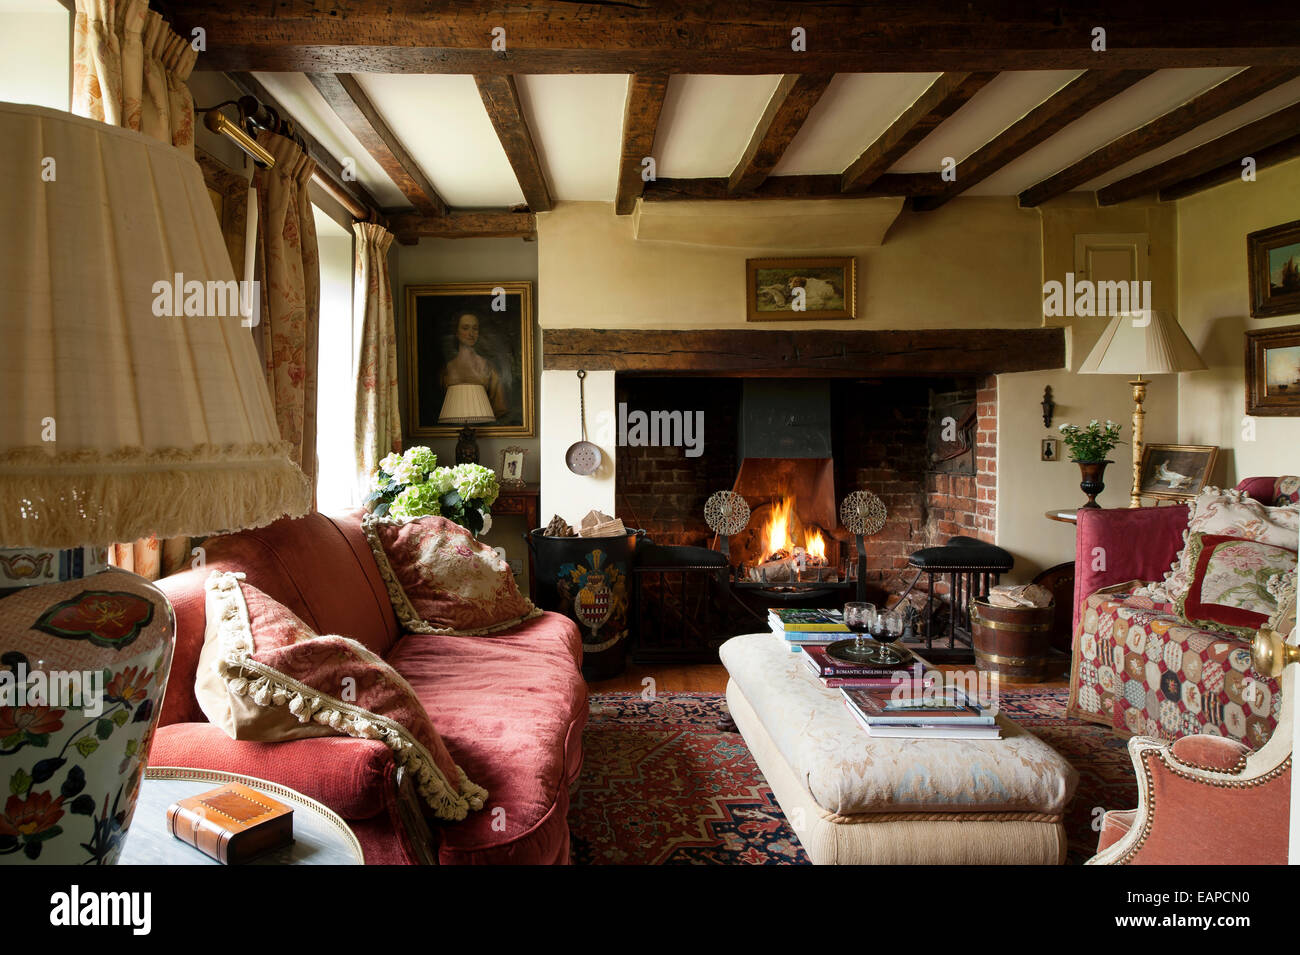 Inglenook Fireplace In Cosy Sitting Room With Original Beamed Ceiling And Red Sofa